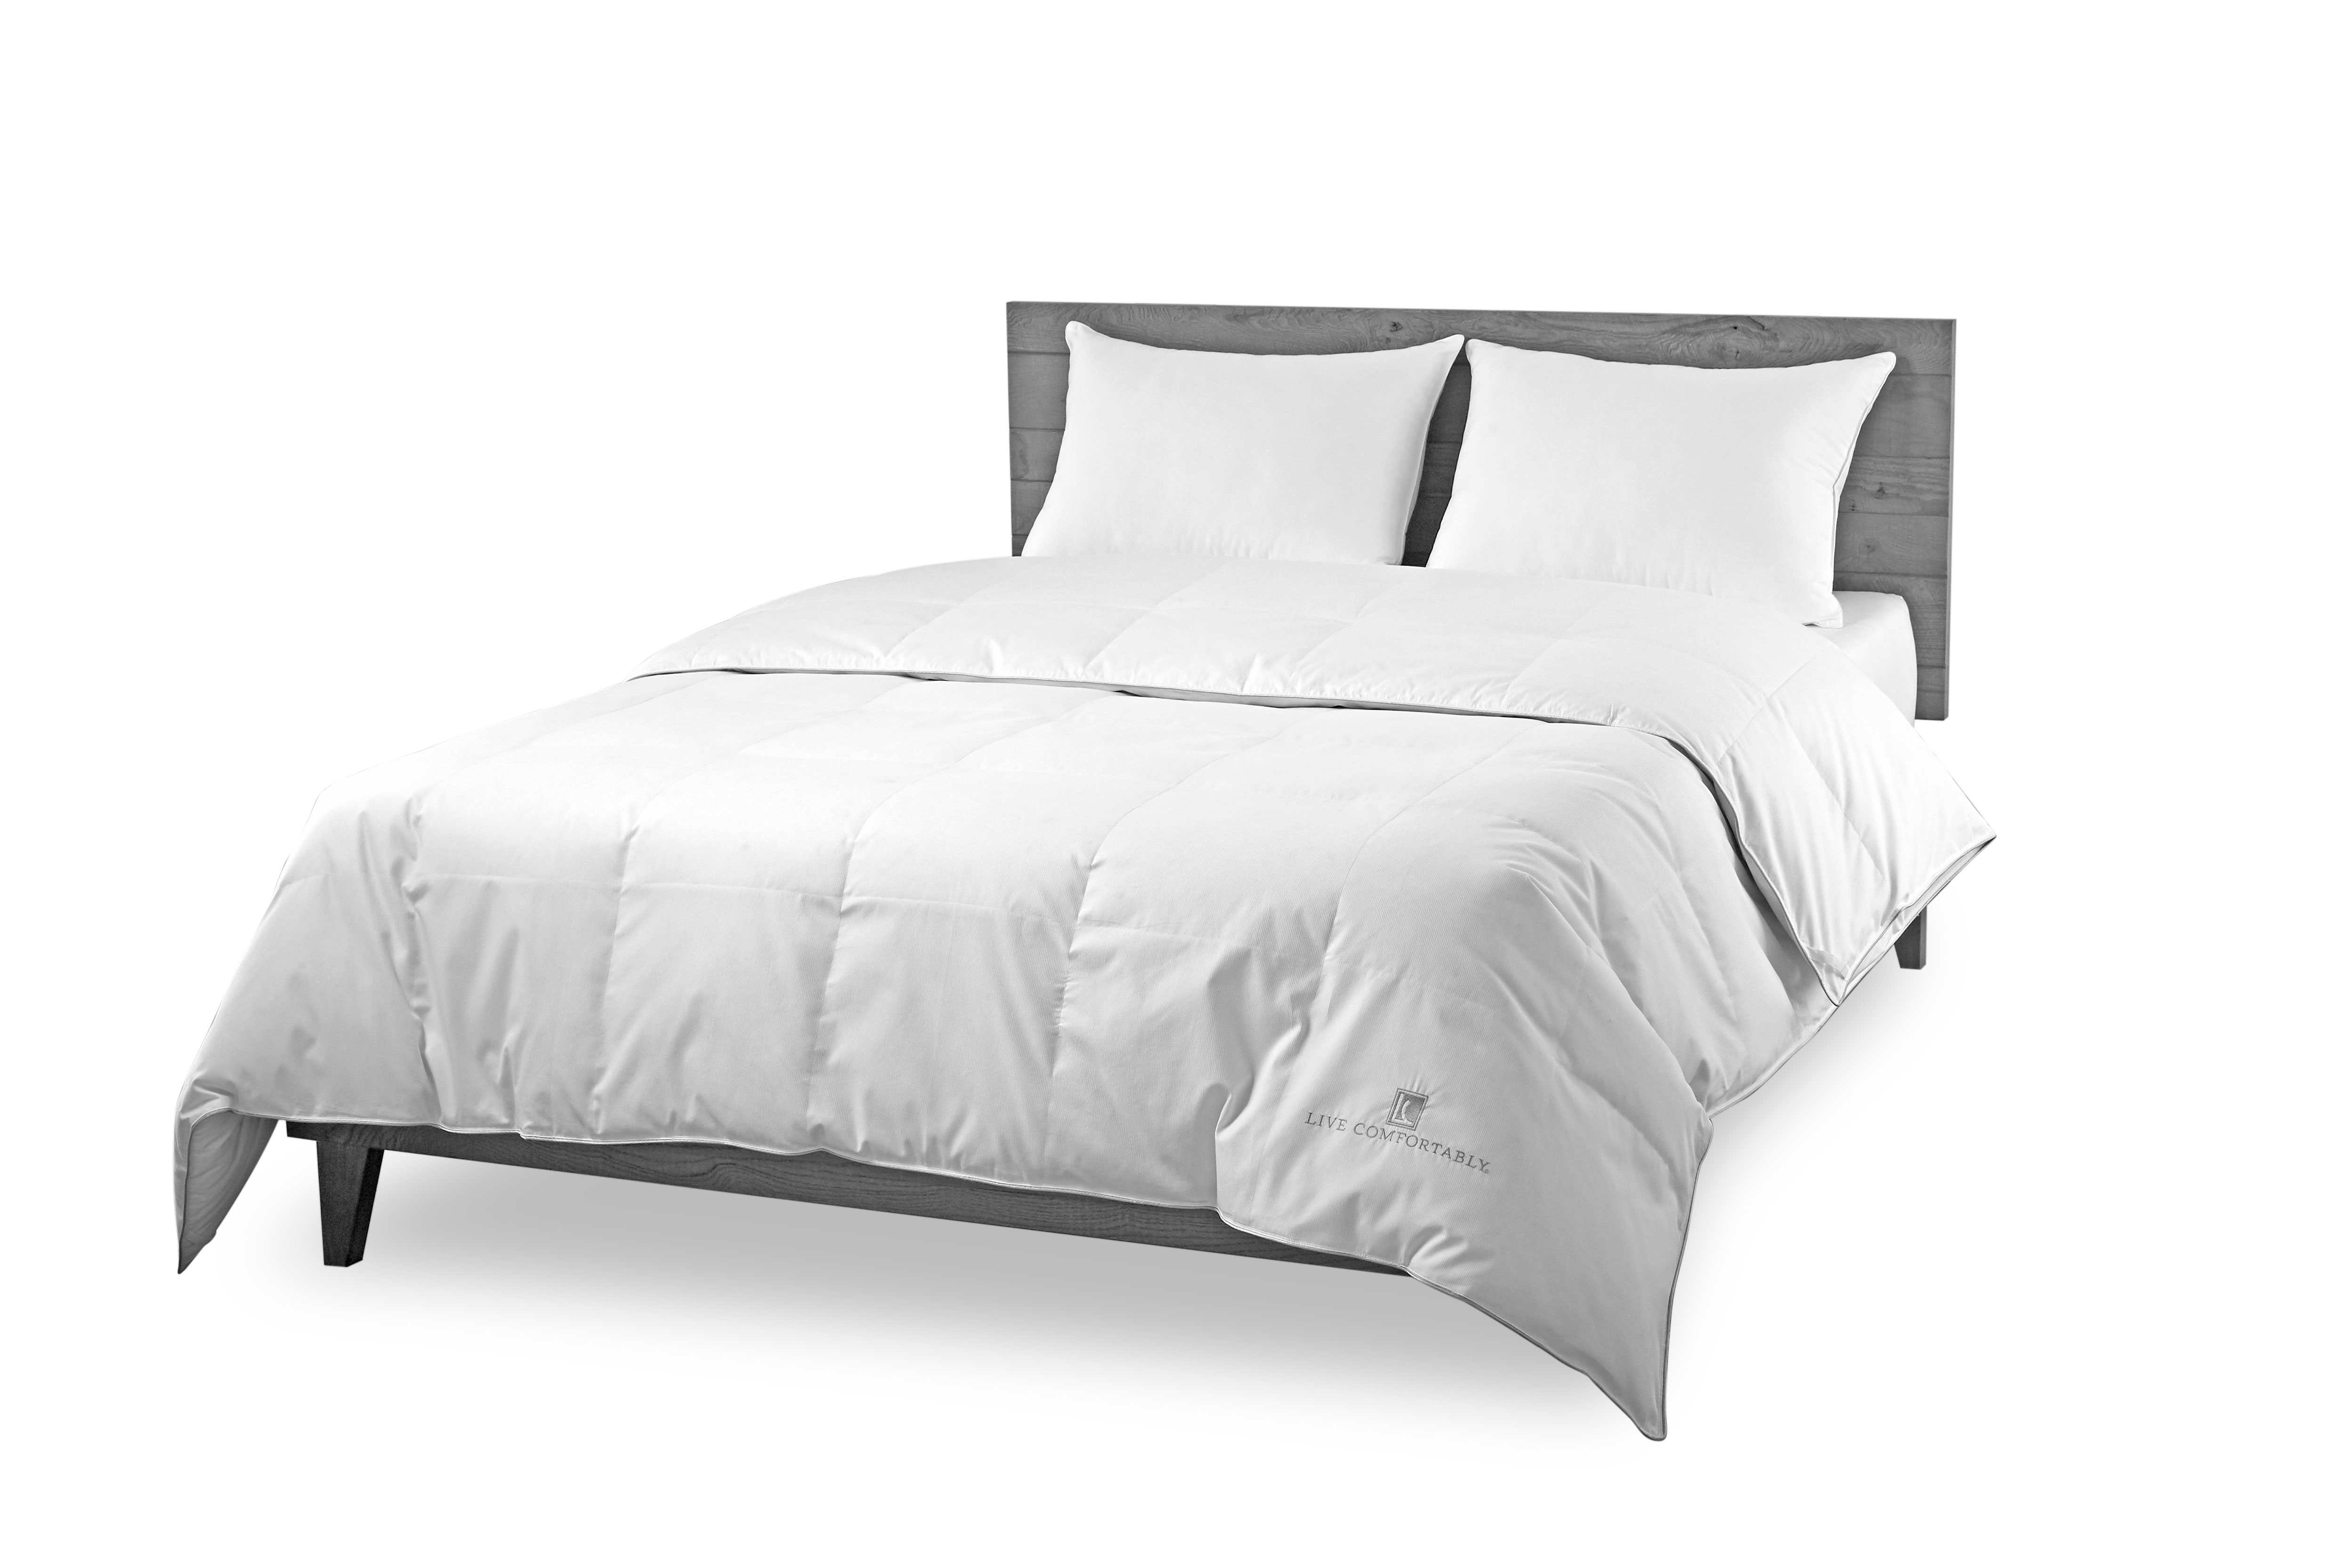 Live Comfortably 174 White Goose Down Comforter Level 1 Warm